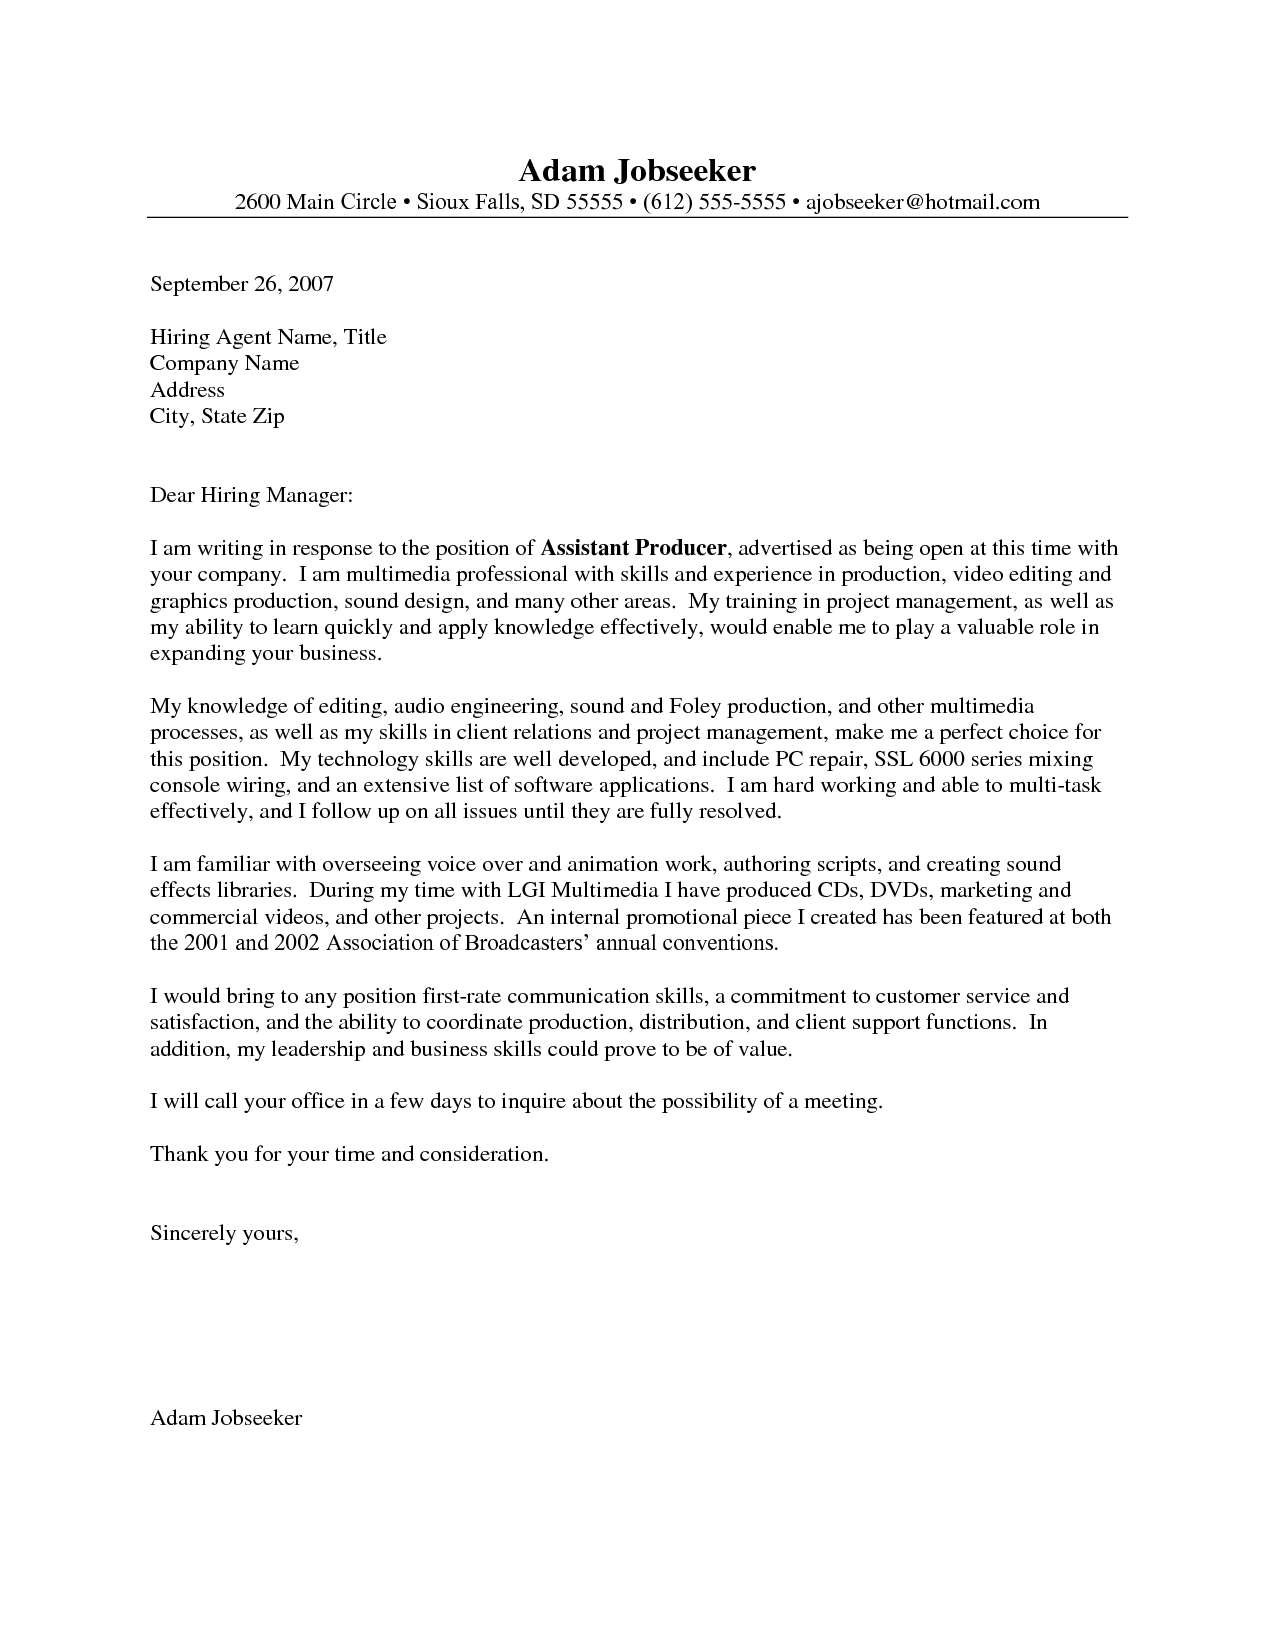 entry level cover letter example | Job | Pinterest | Cover letter ...